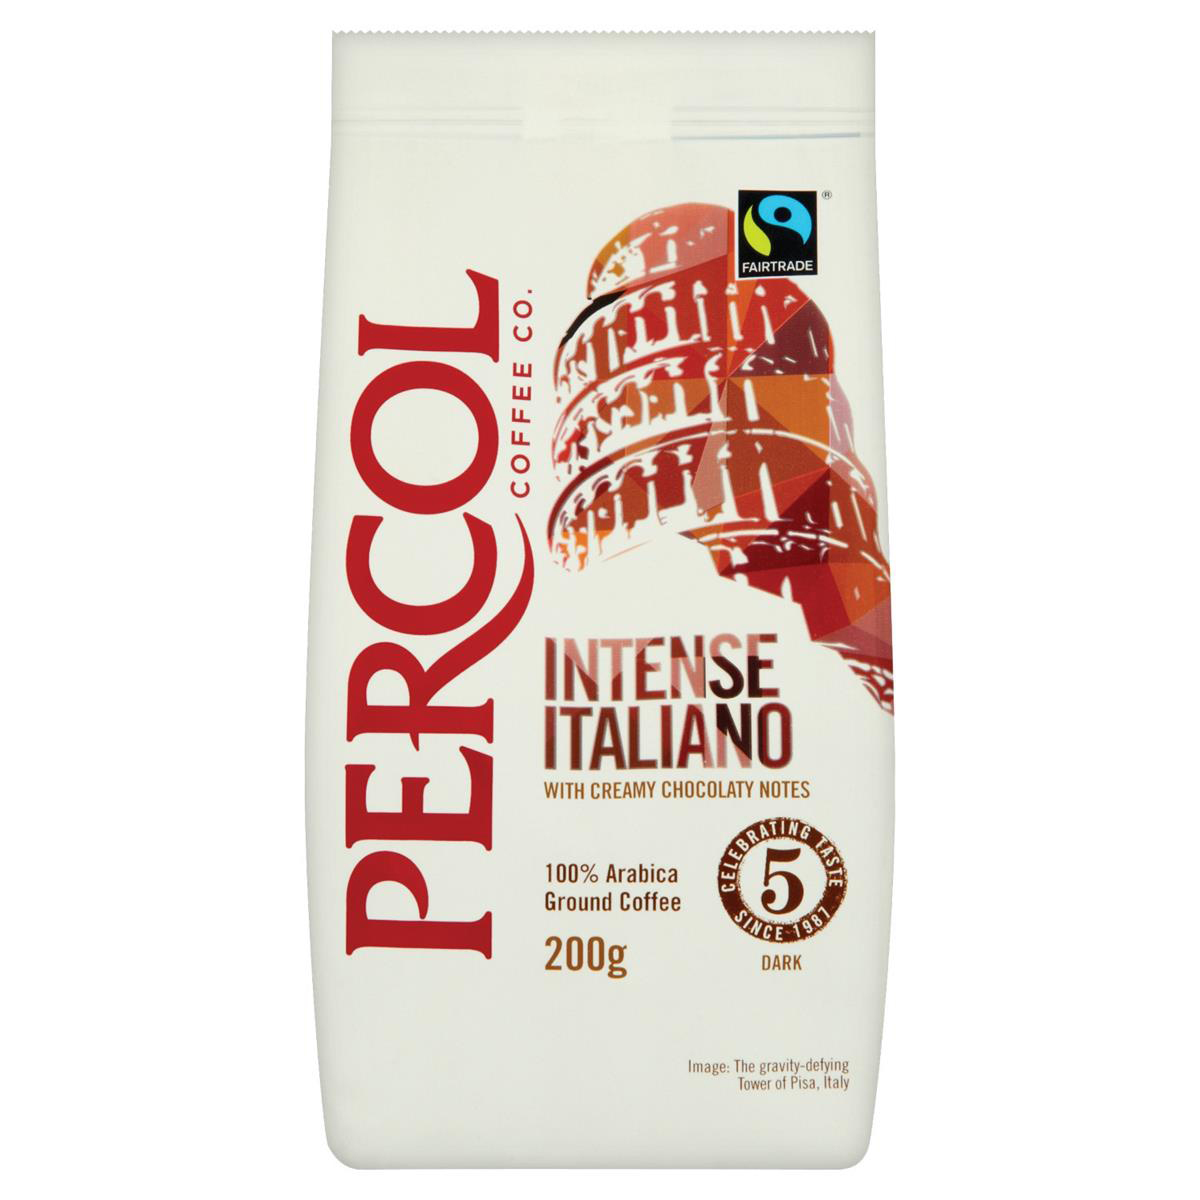 Percol Intense black and beyond Italiano Dark Ground Coffee 200g Ref 0403244